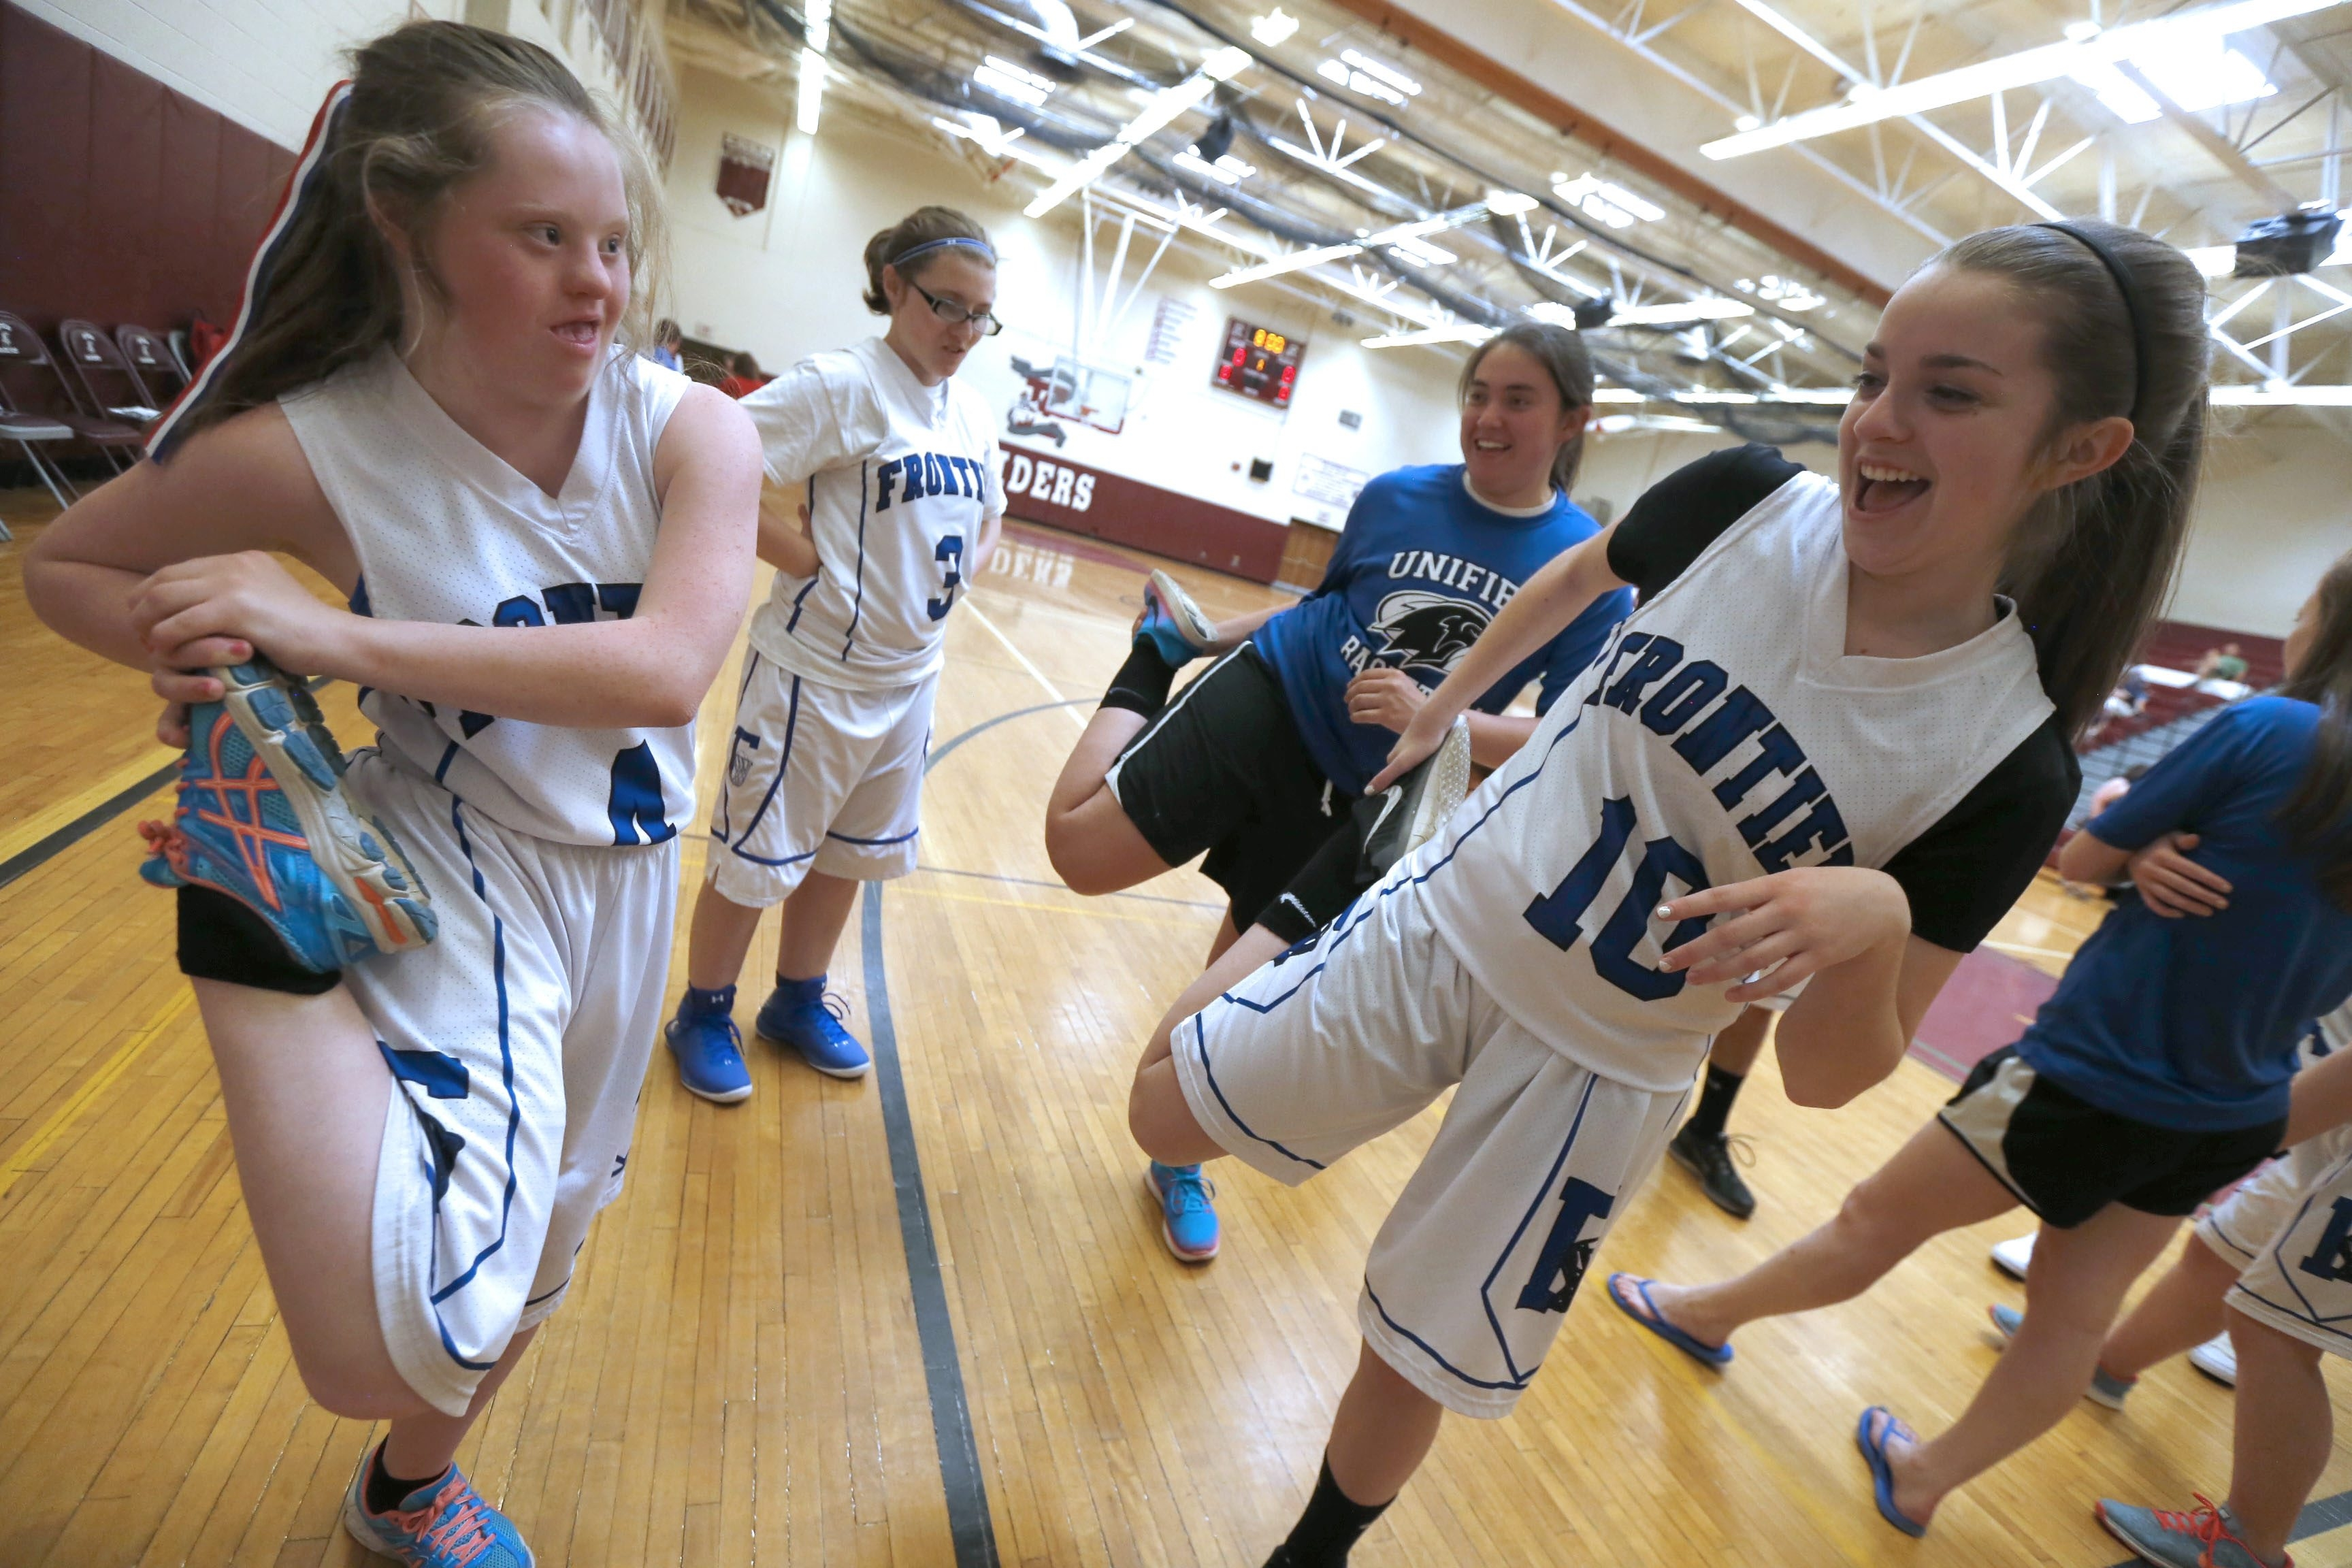 Frontier's Madison Fortuna, left, leads pregame stretching with teammate Kayle Filighera before the Falcons' recent game with Eden in Section VI Unified Sports, a collaboration between New York State Public High School Athletic Association and Special Olympics.